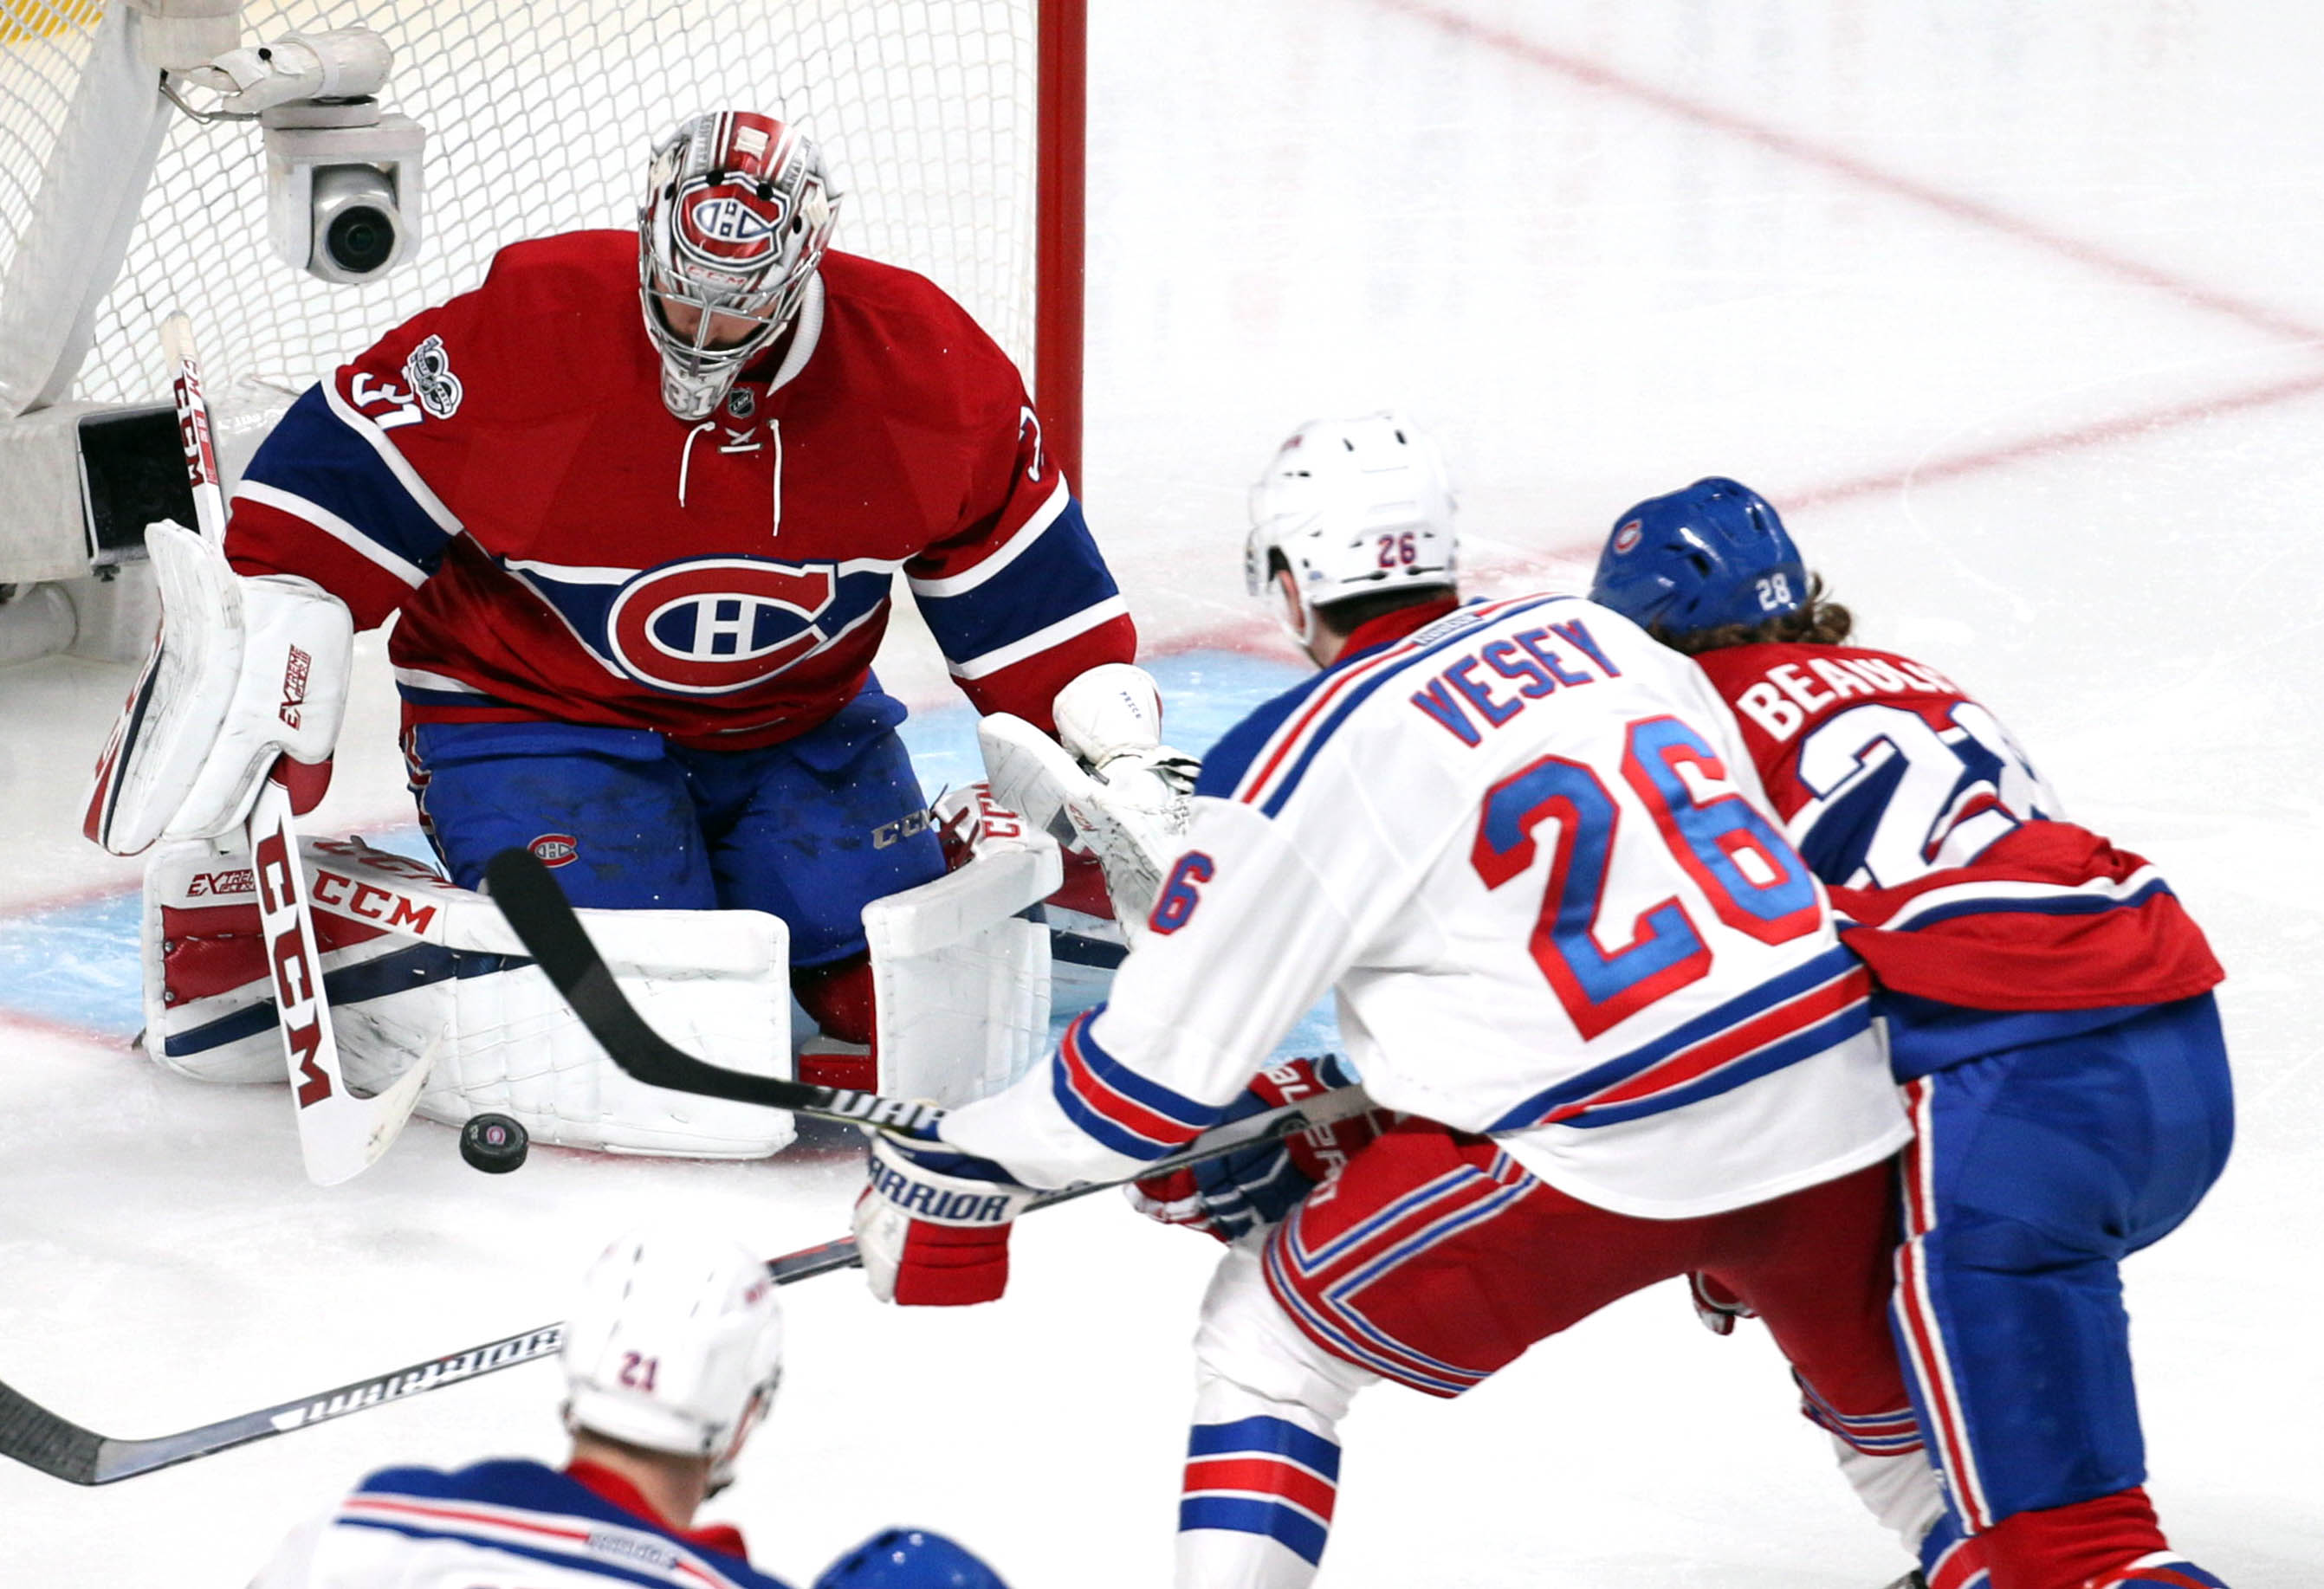 10022760-nhl-stanley-cup-playoffs-new-york-rangers-at-montreal-canadiens